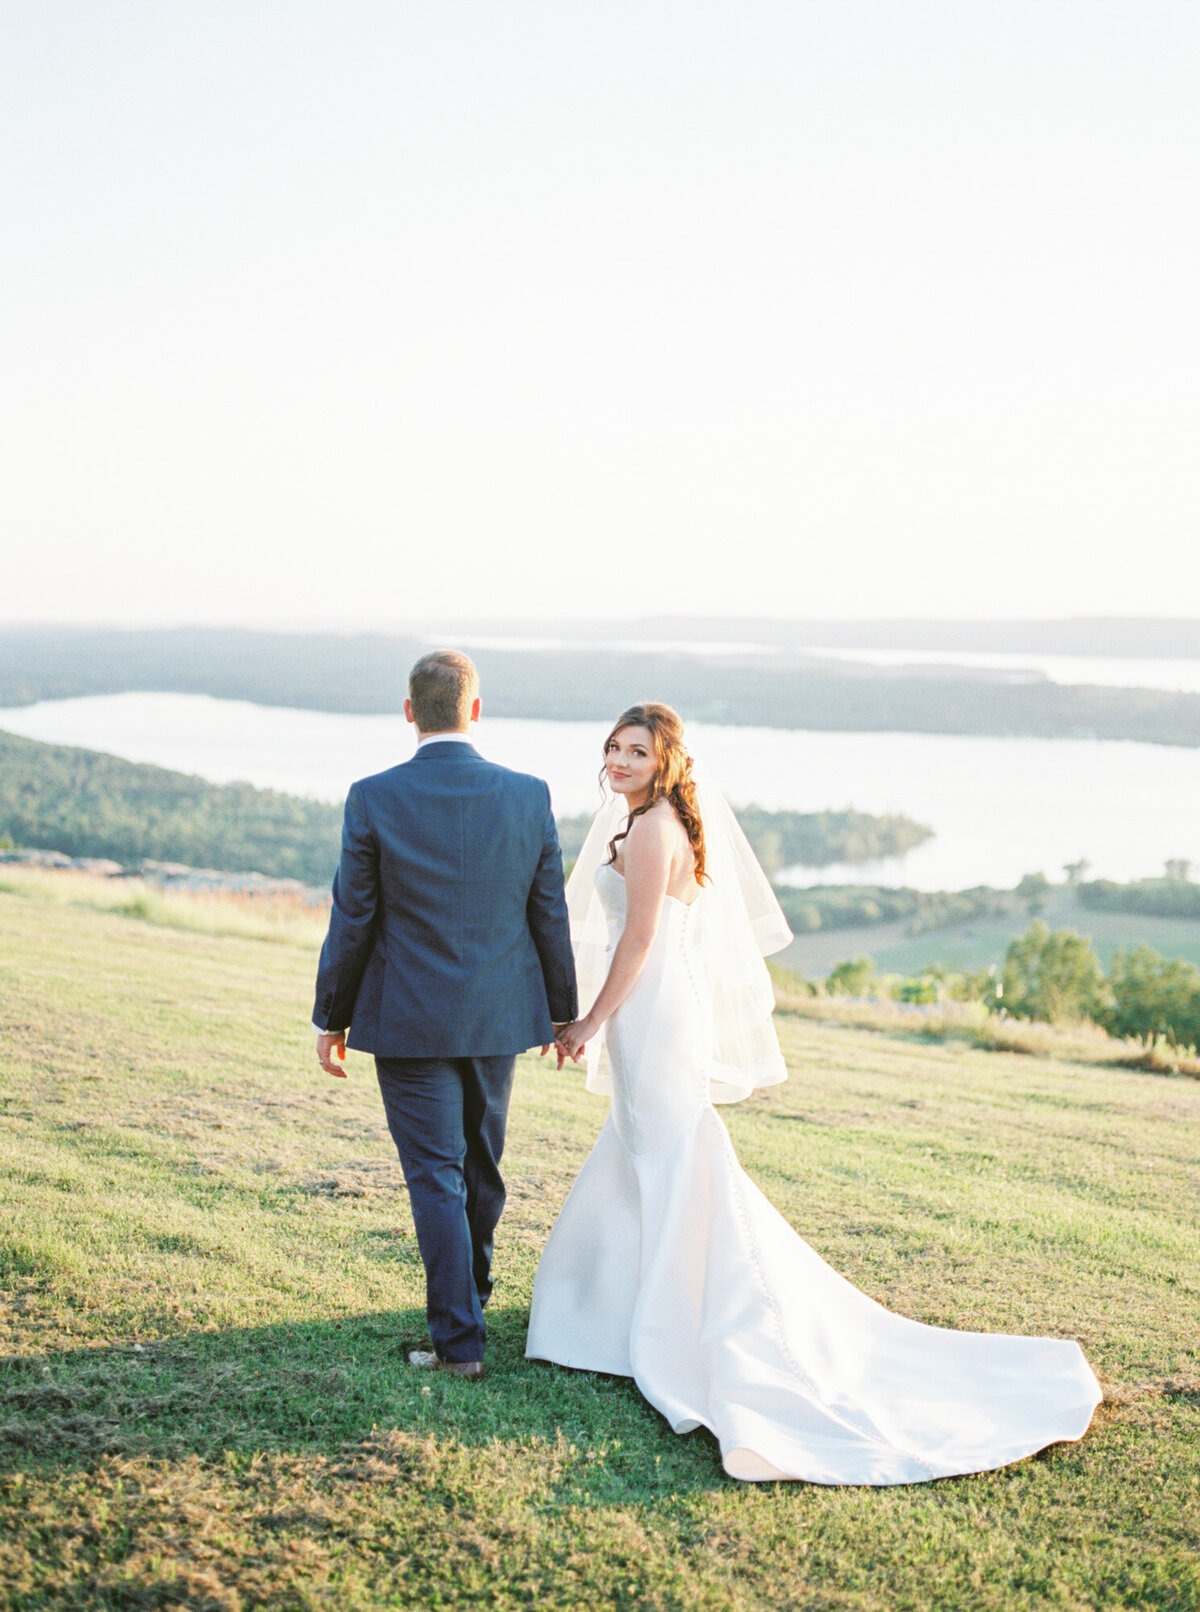 KelseyDawnPhotography-Alabama-Wedding-Photographer-Kisor-22